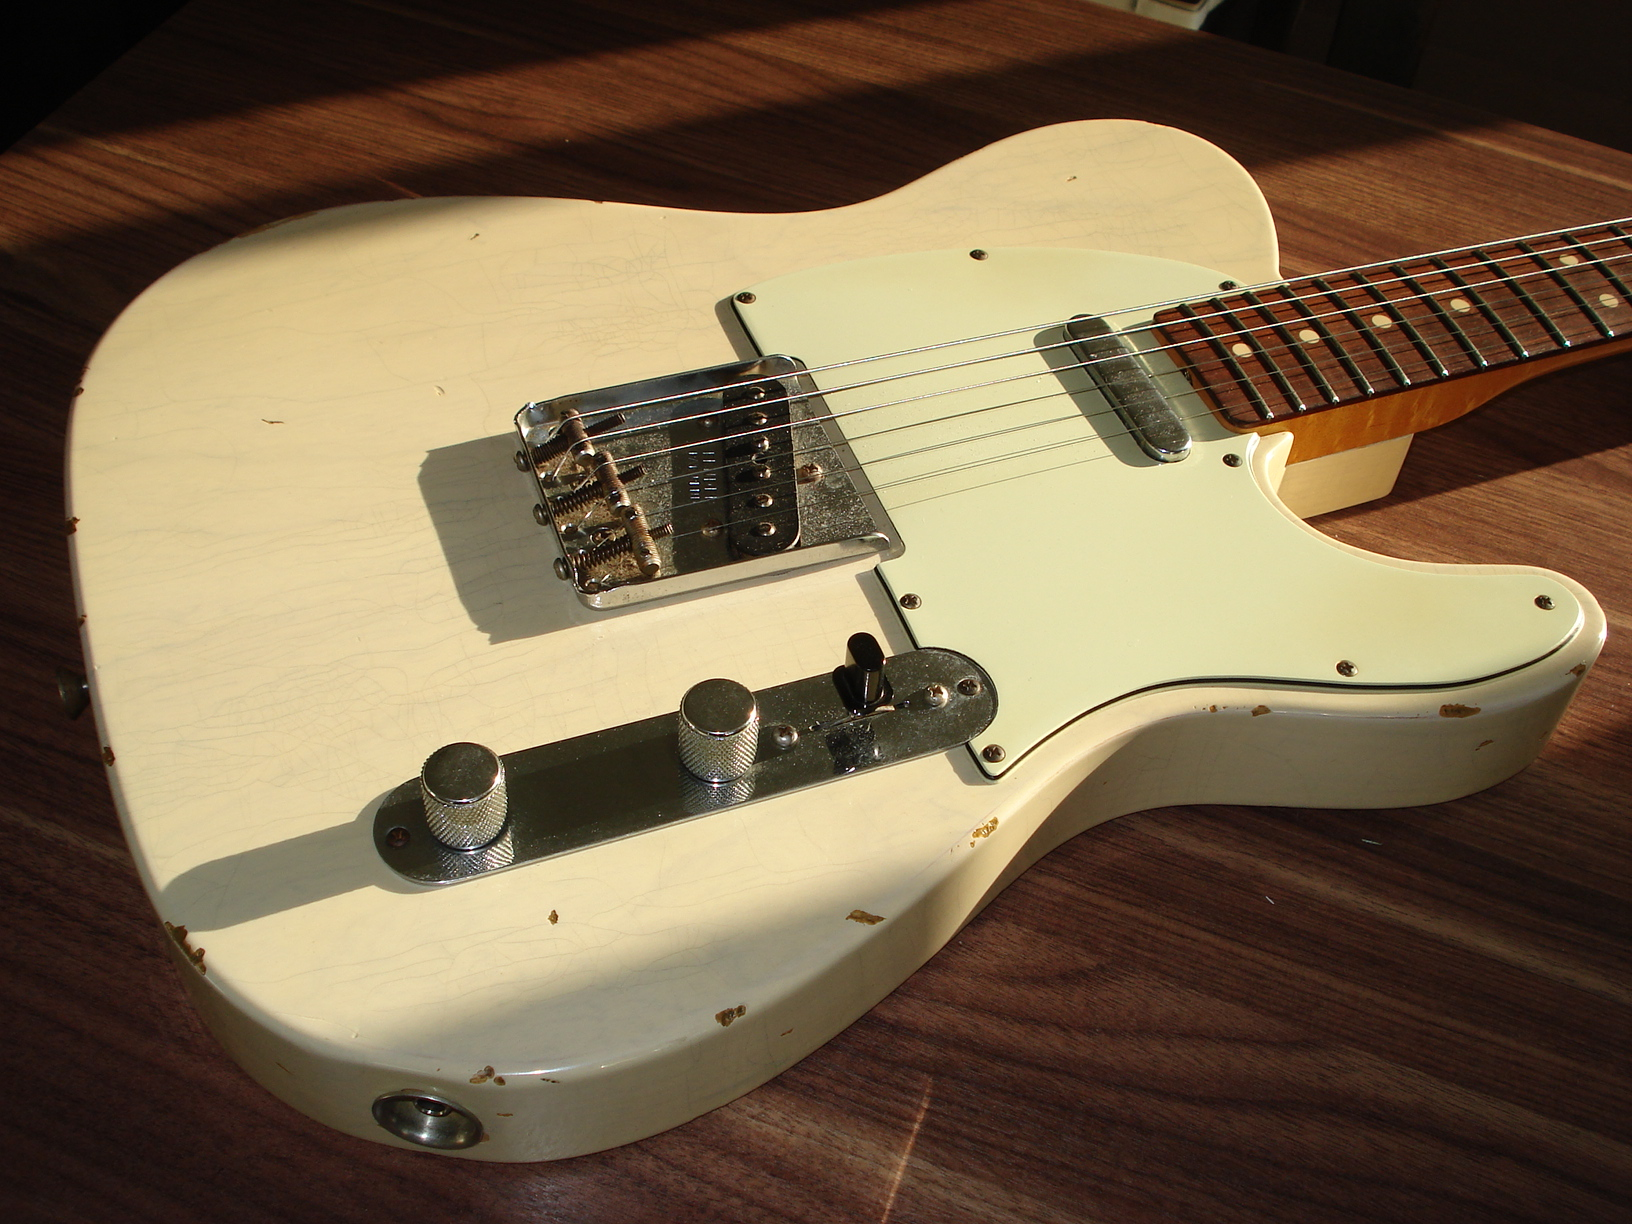 Fender Telecaster Guitar Wallpaper Hd Cover Music Picture Pictures 1632x1224